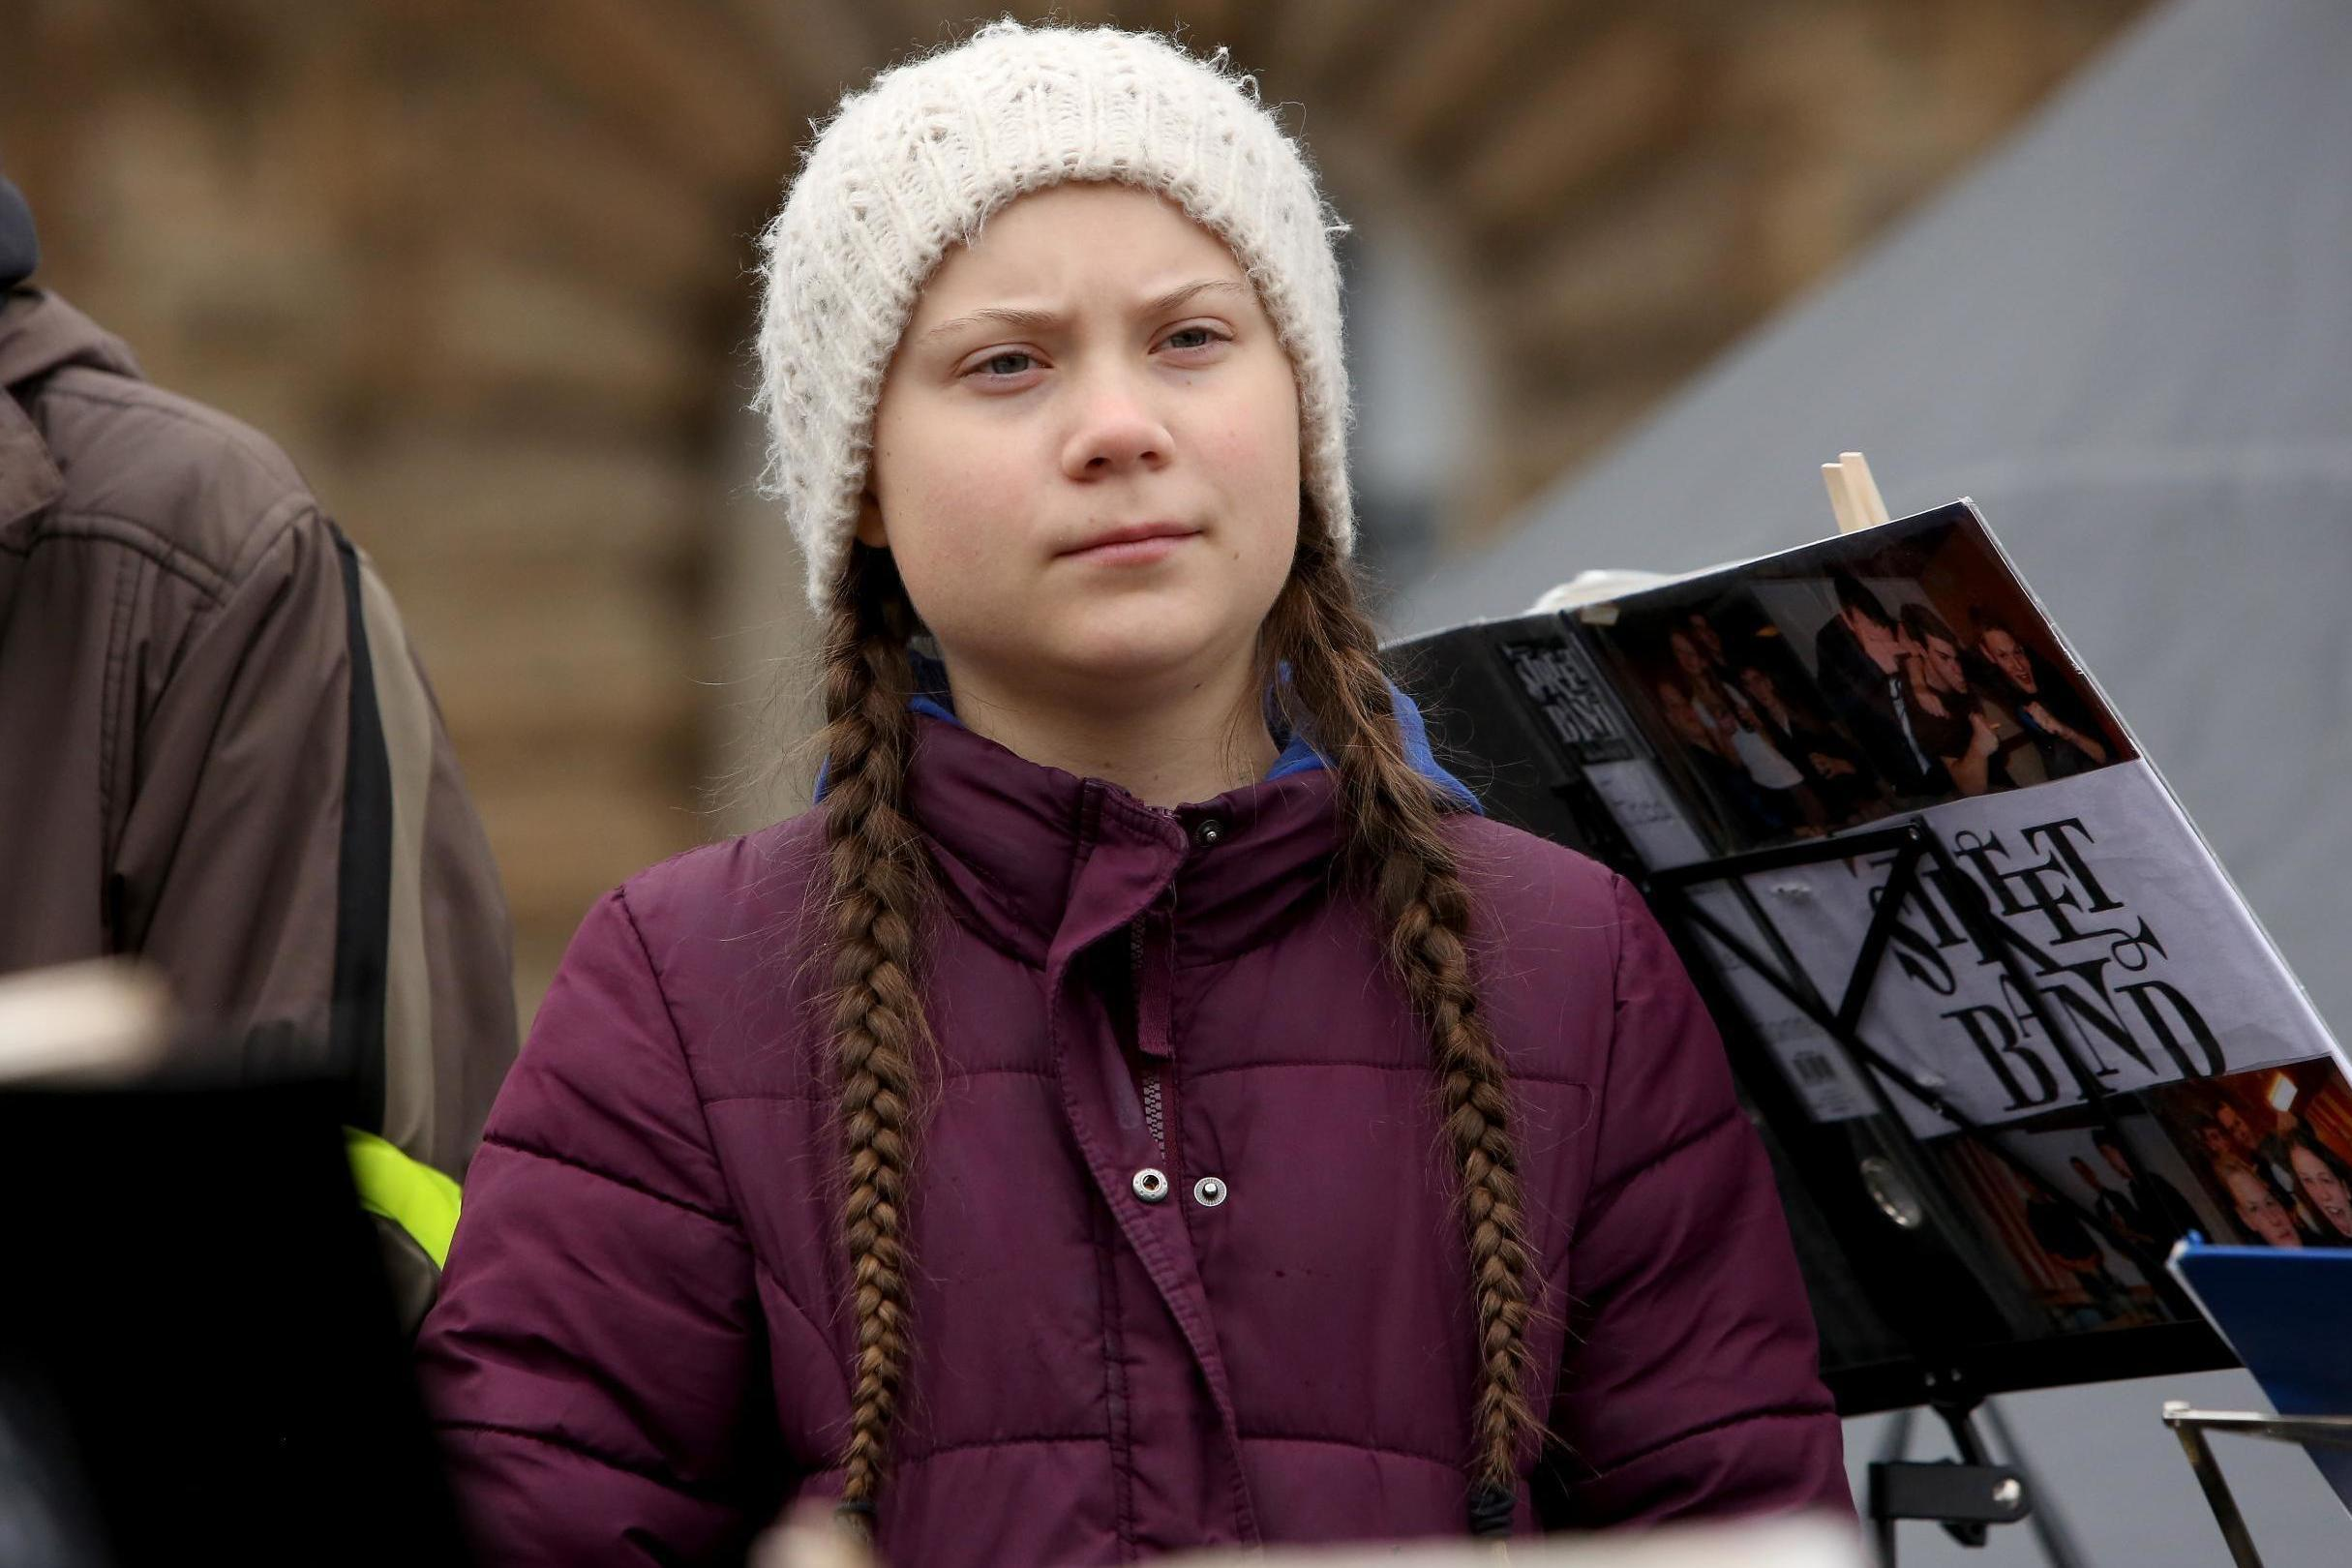 Greta Thunberg Responds To Cartoon Depicting Her Being Sexually